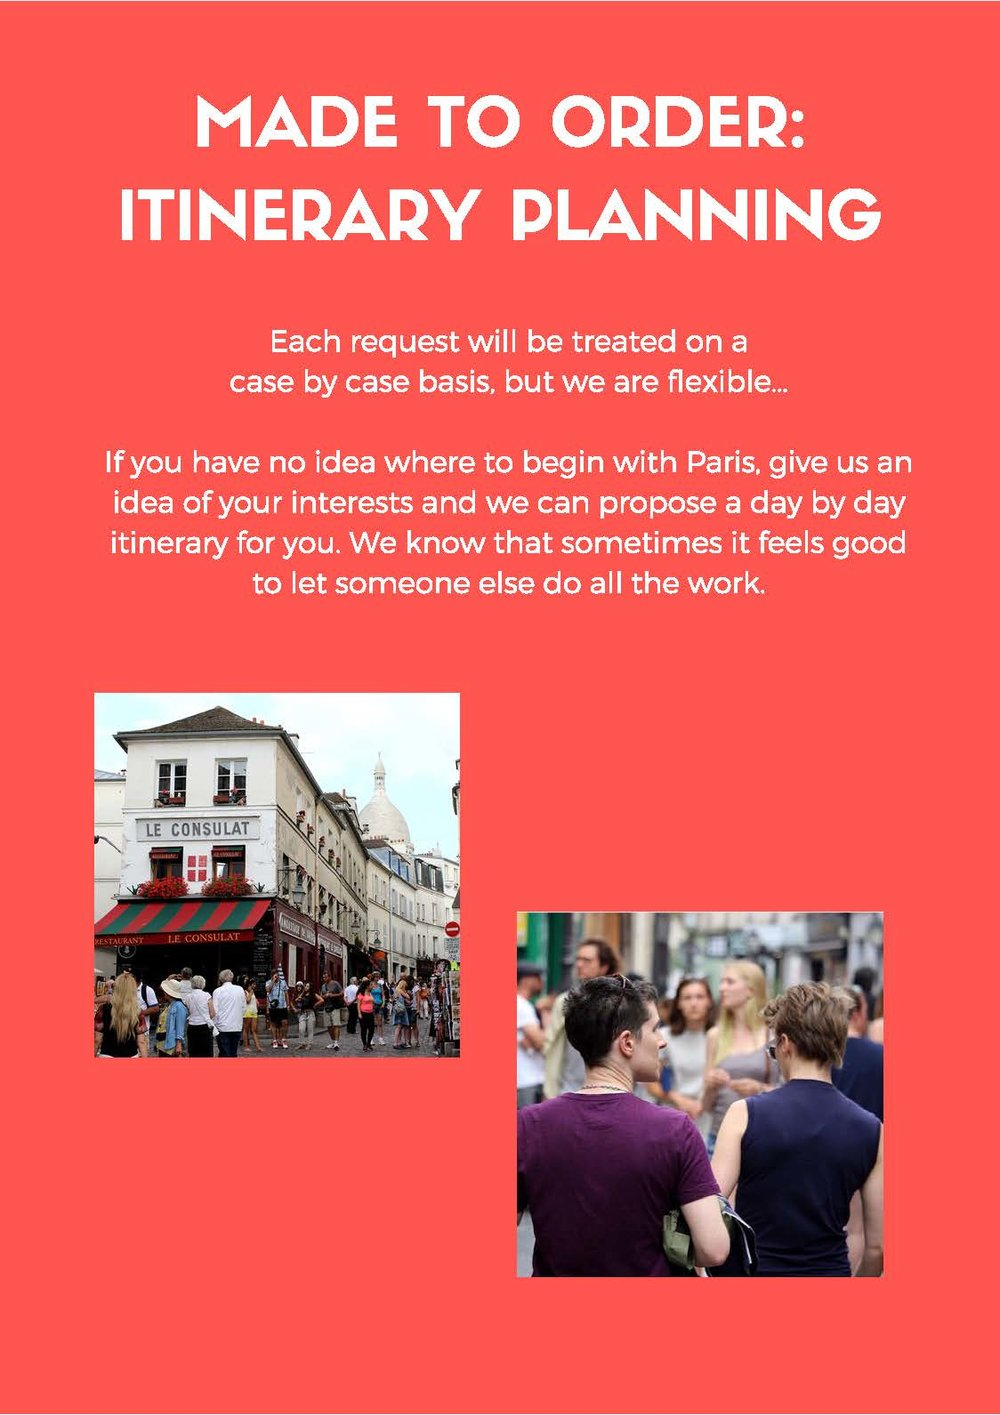 Don't forget we do made-to-order itineraries, too!